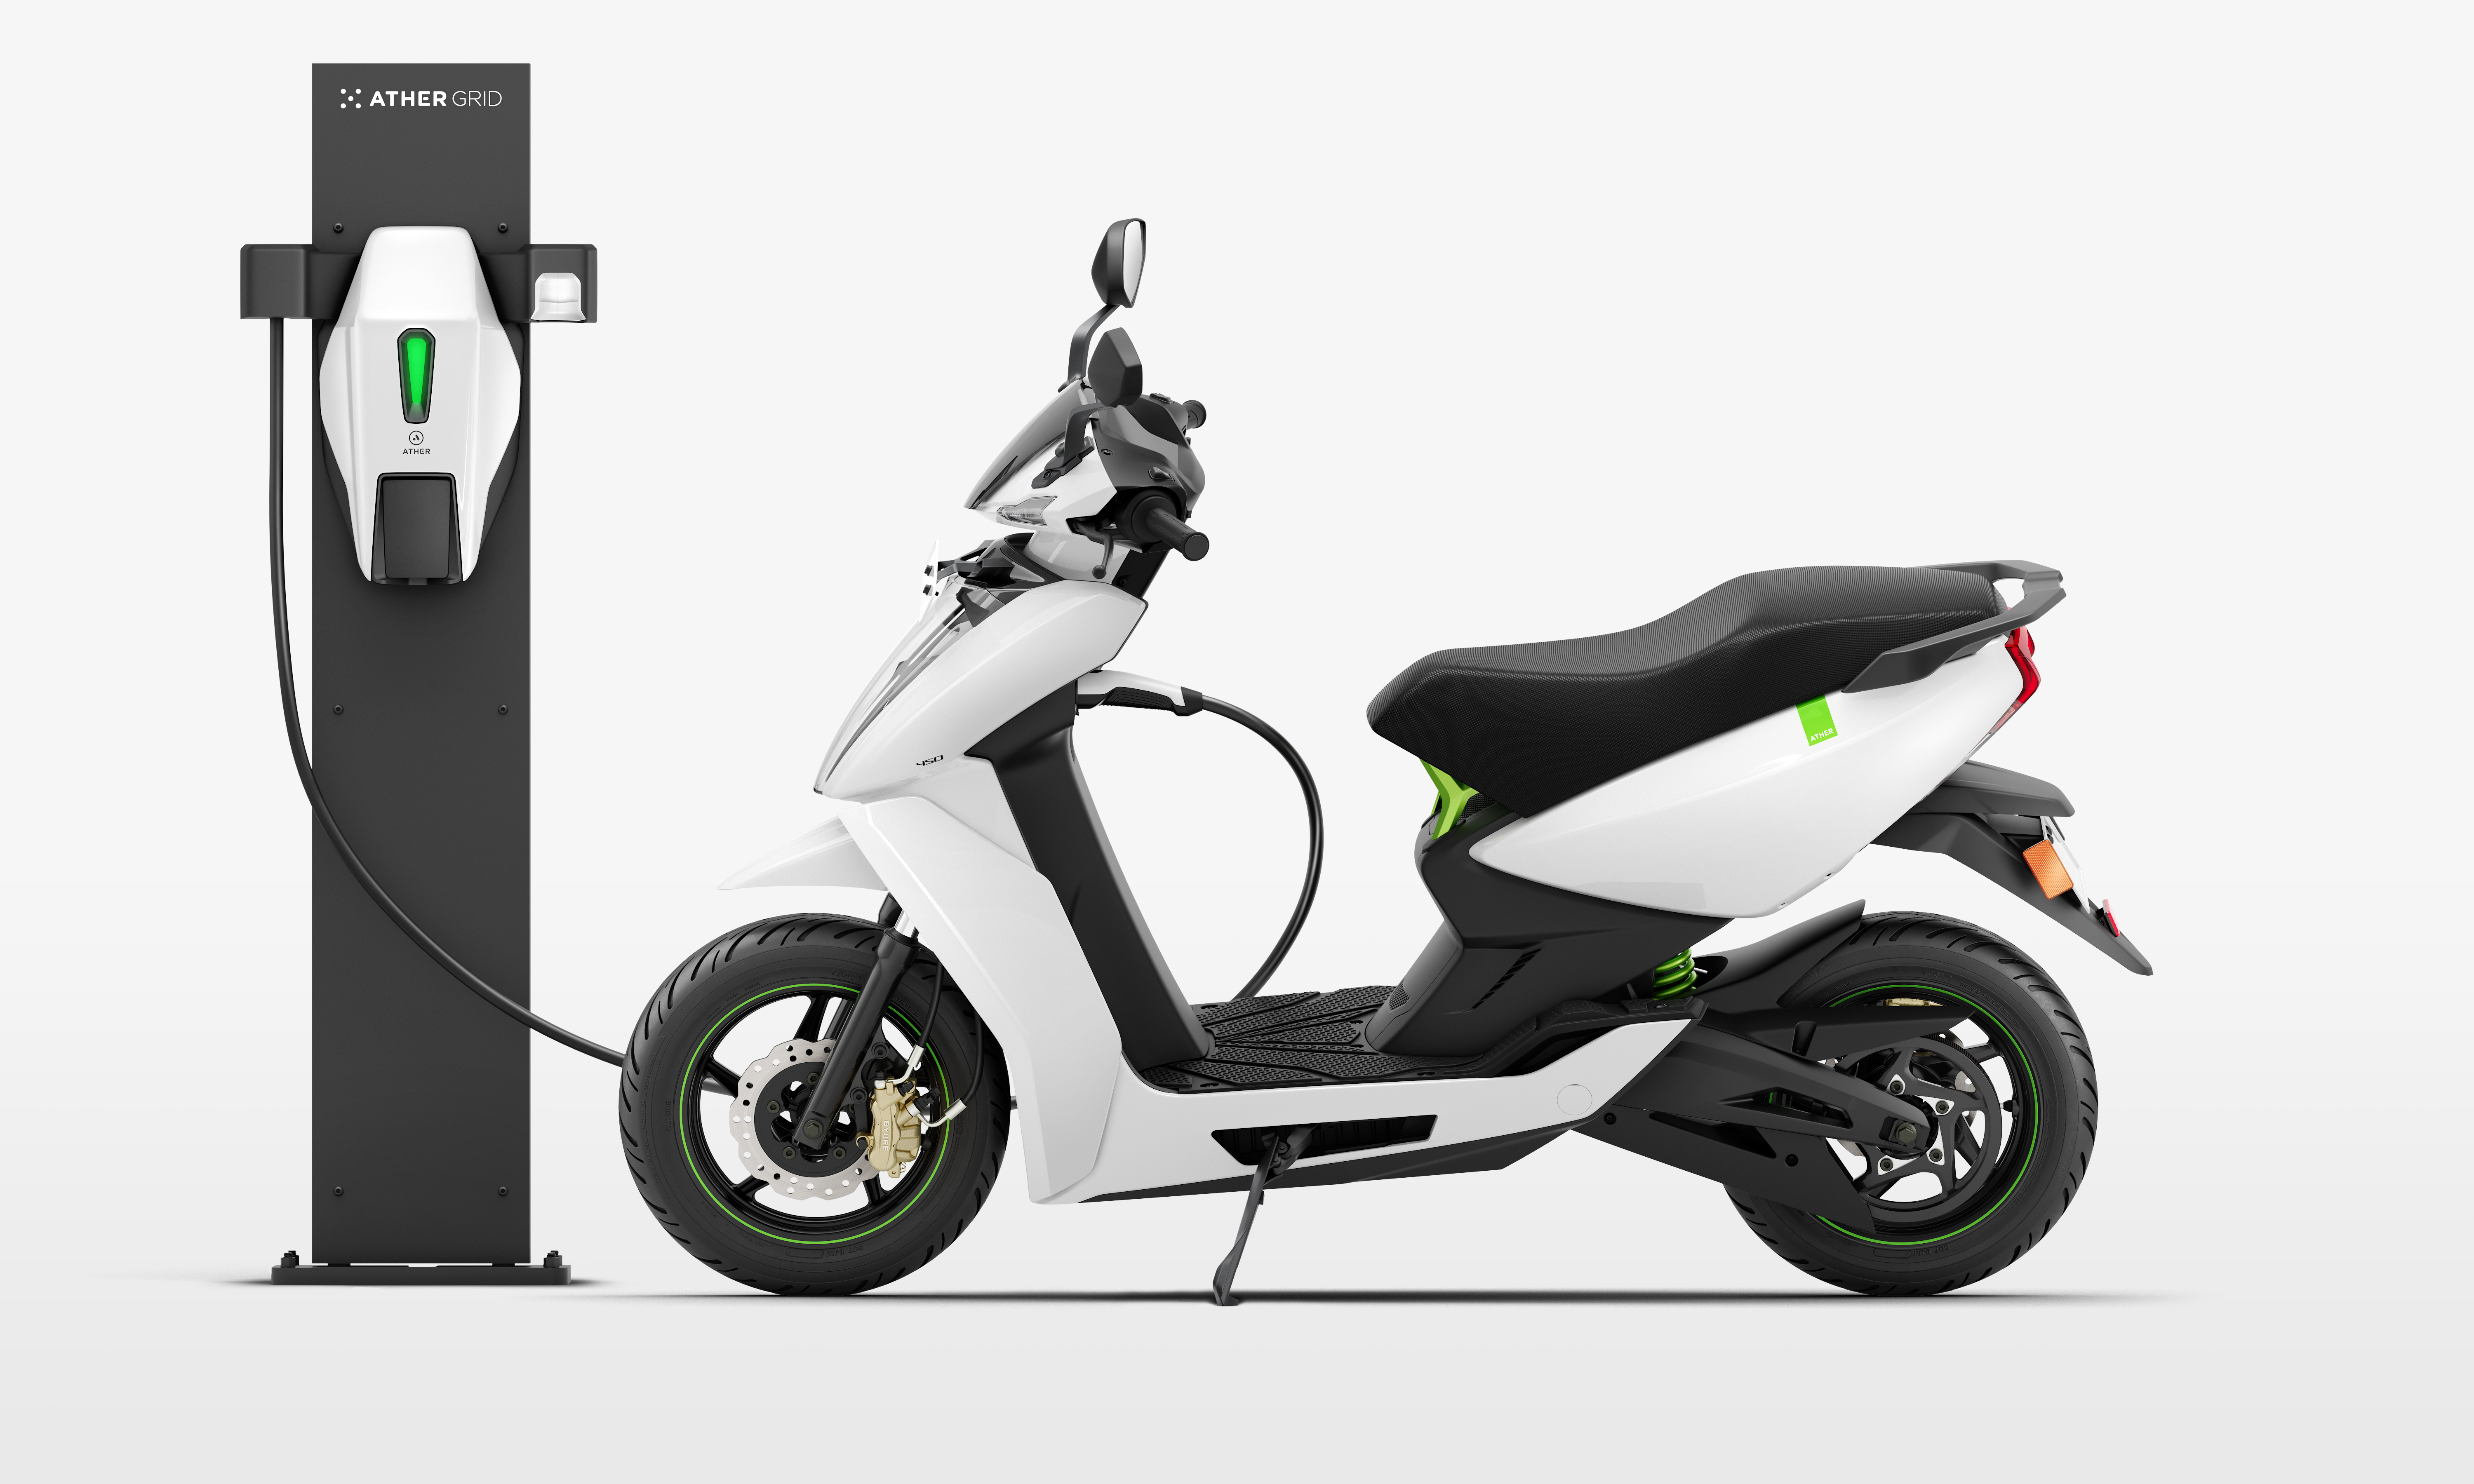 Electric Scooter Manufacturer Ather Energy Raises $51 Million in